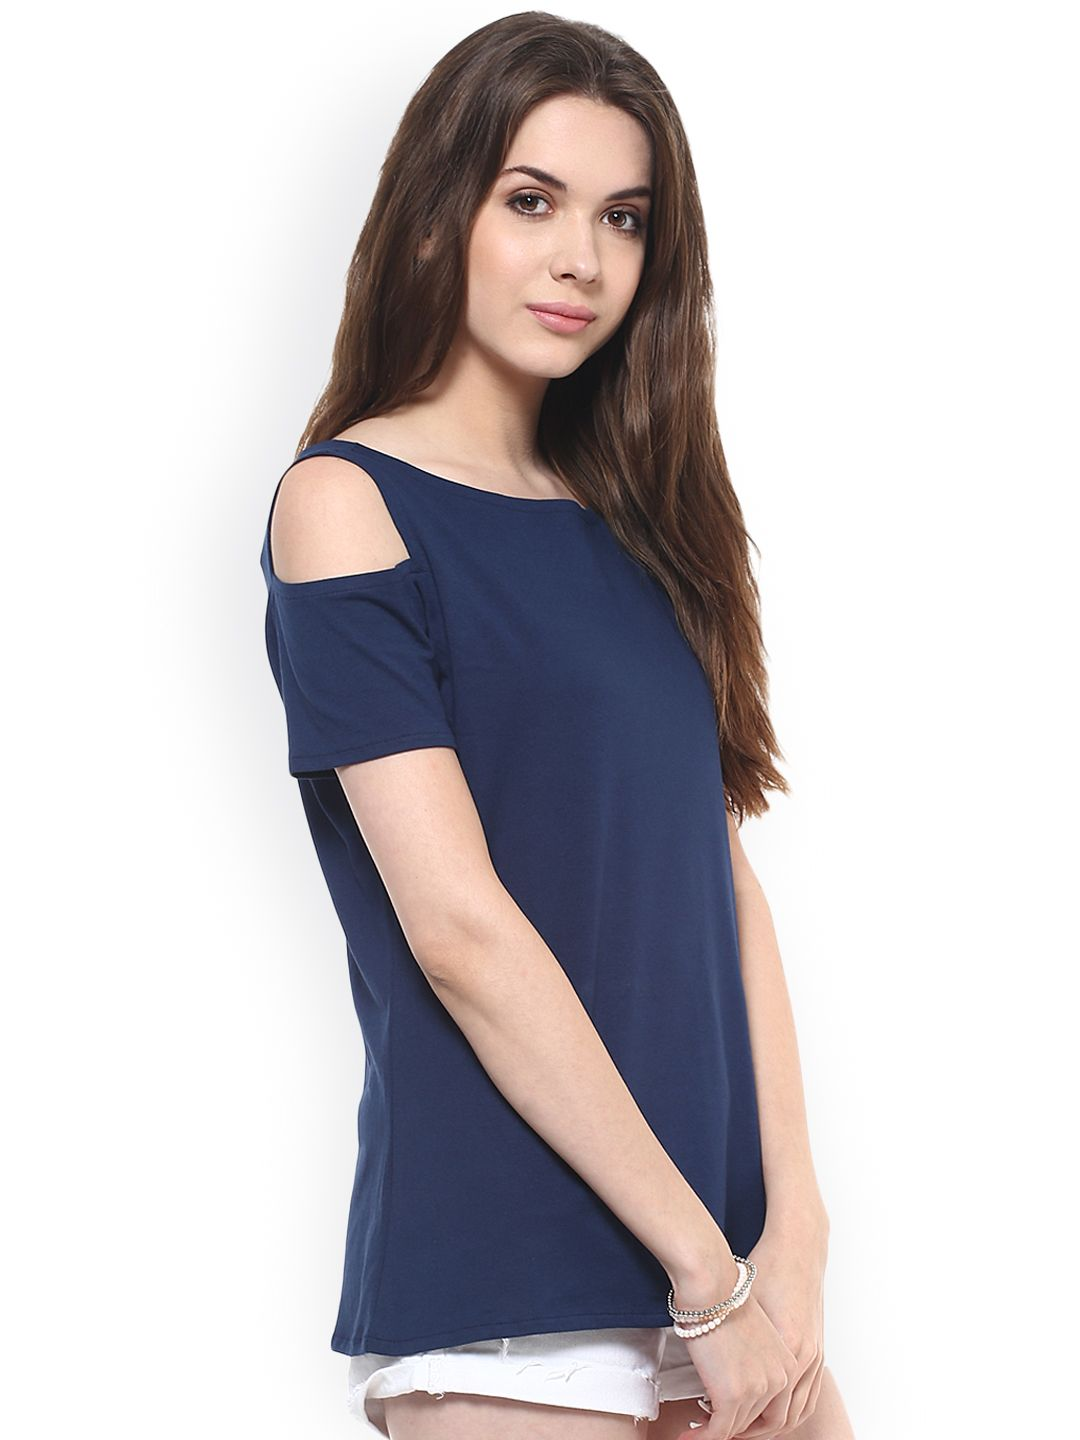 3c561afa3a Ladies Tops - Buy Tops & Tshirts for Women Online in India - Myntra ...